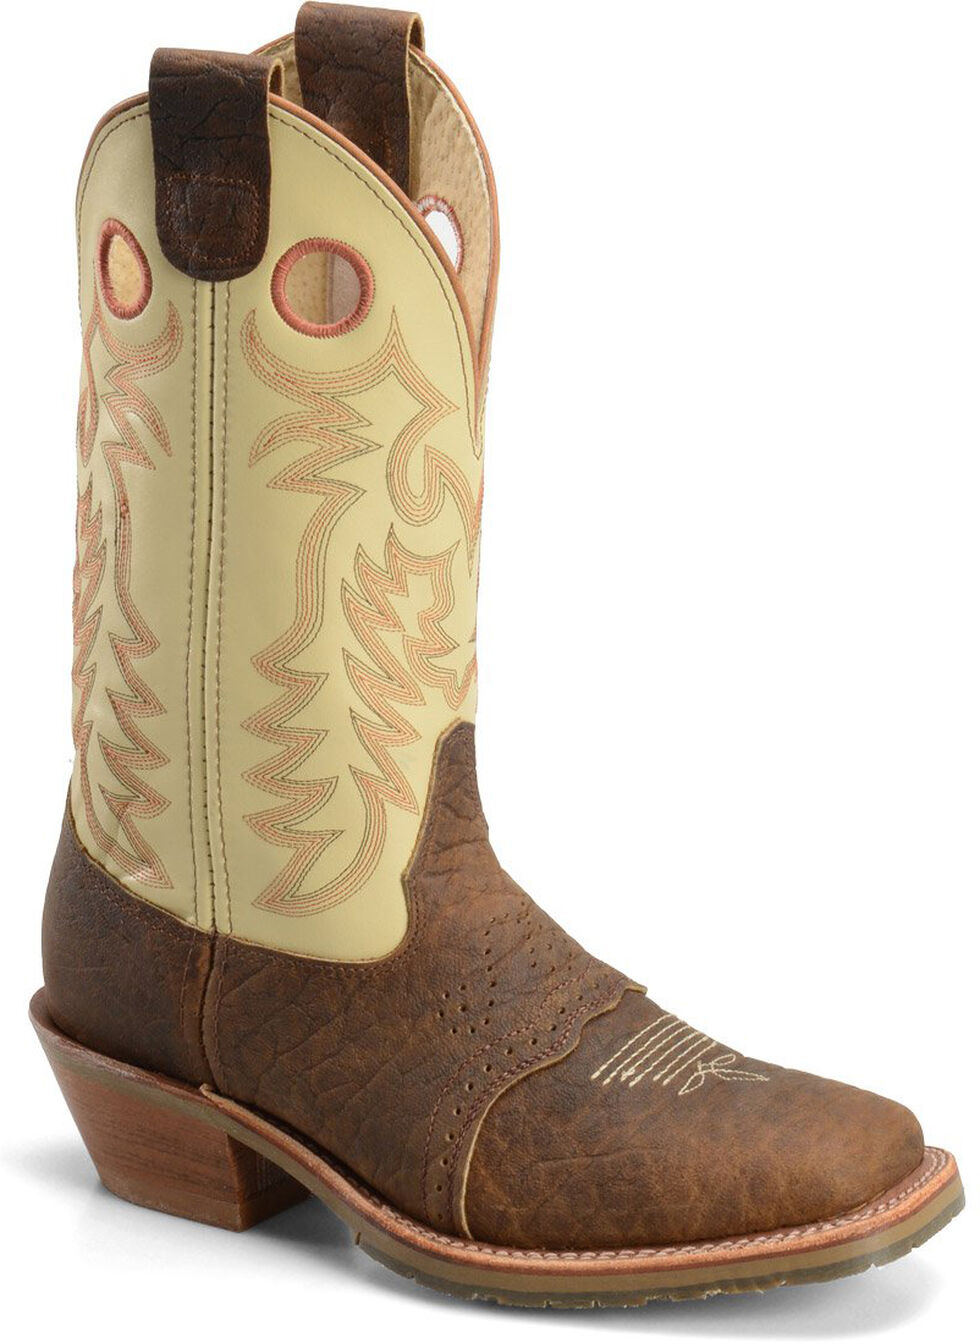 Double H Men's Domestic ICE Buckaroo Western Work Boots - Square Toe, Brown, hi-res